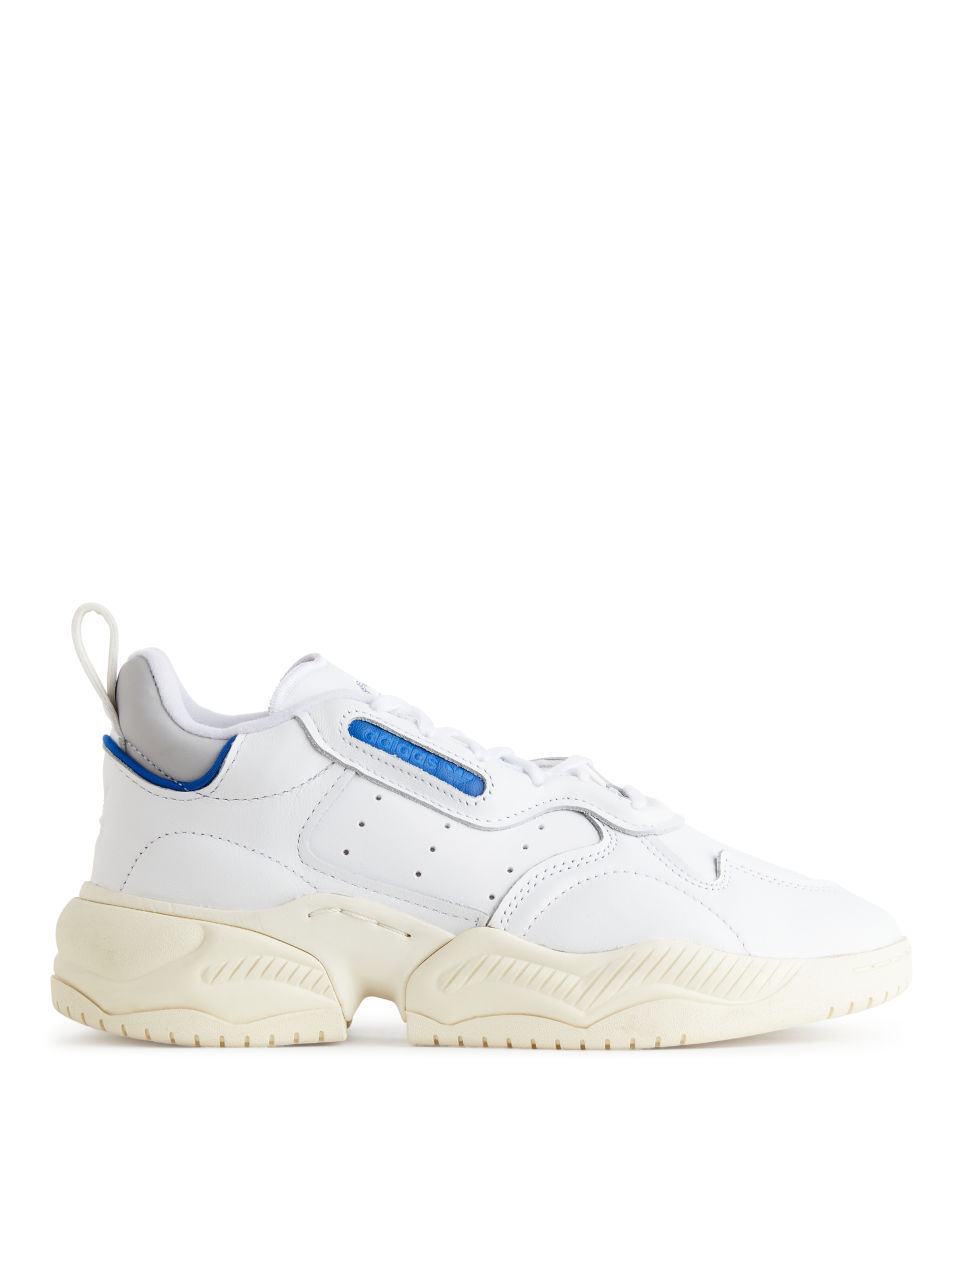 adidas Supercourt RX Trainers - White